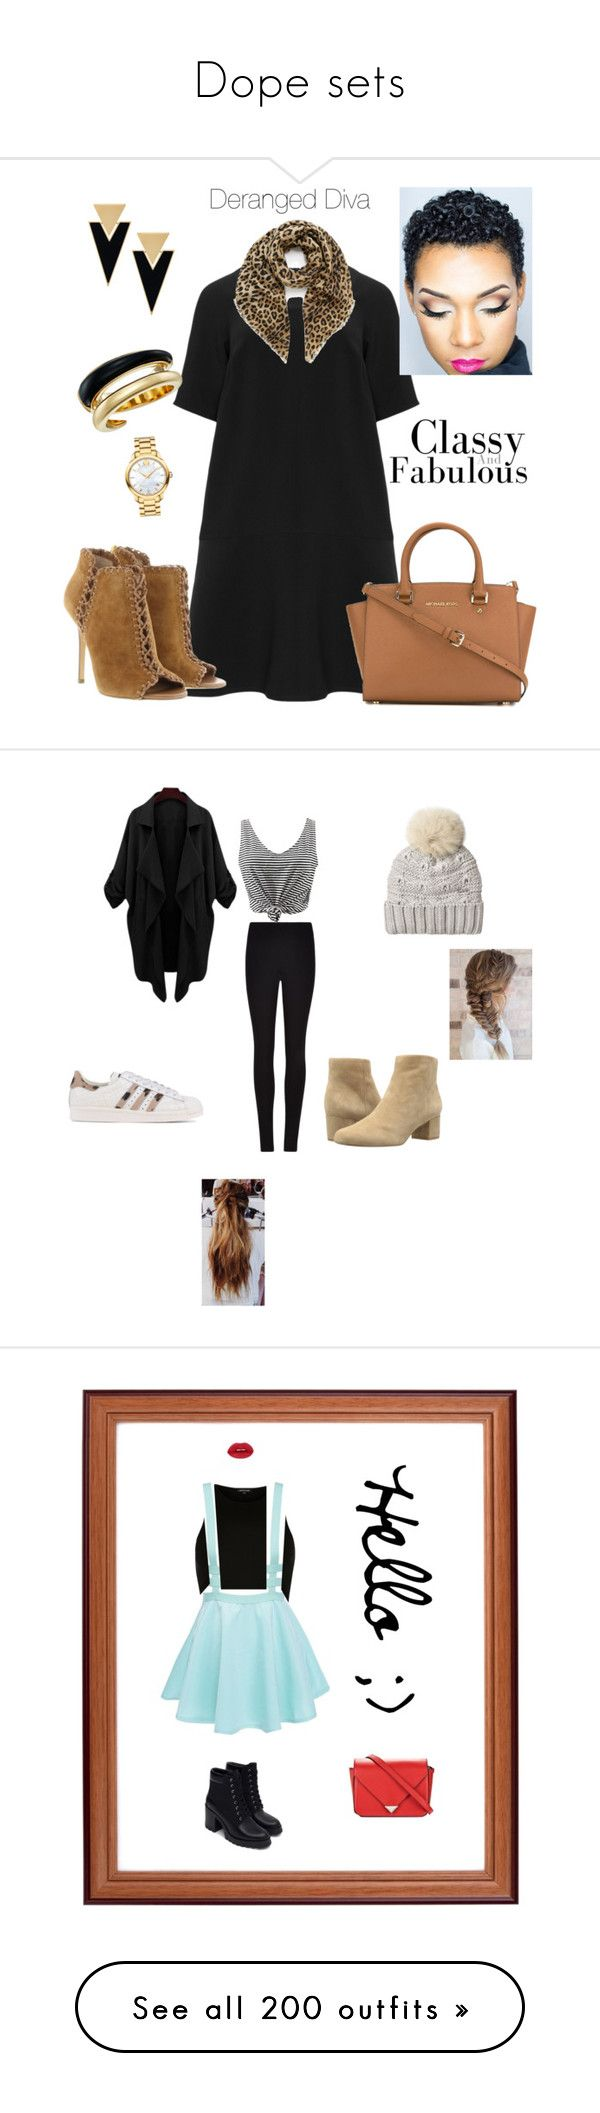 """Dope sets"" by thepinkandpurplerainbow ❤ liked on Polyvore featuring Manon Baptiste, Michael Kors, MICHAEL Michael Kors, Mulberry, Yves Saint Laurent, Movado, Woolrich, Winser London, WithChic and Sam Edelman"